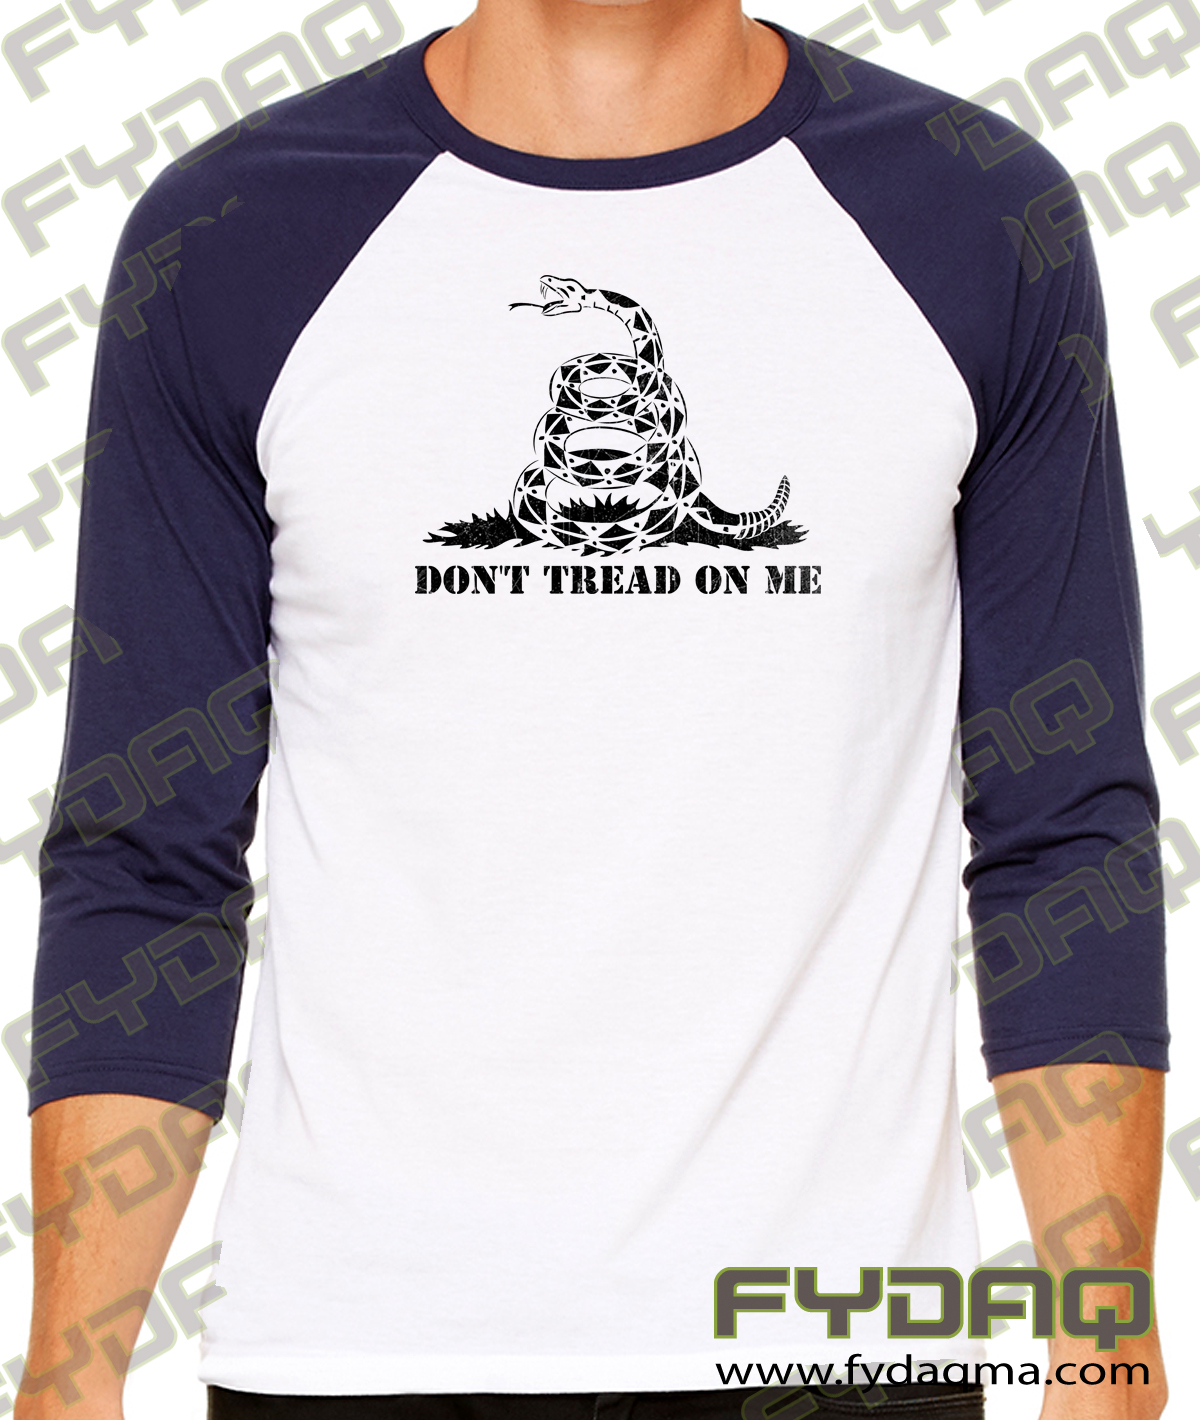 gadsden-flag-don't-tread-on-me-raglan-navy-white-fydaq